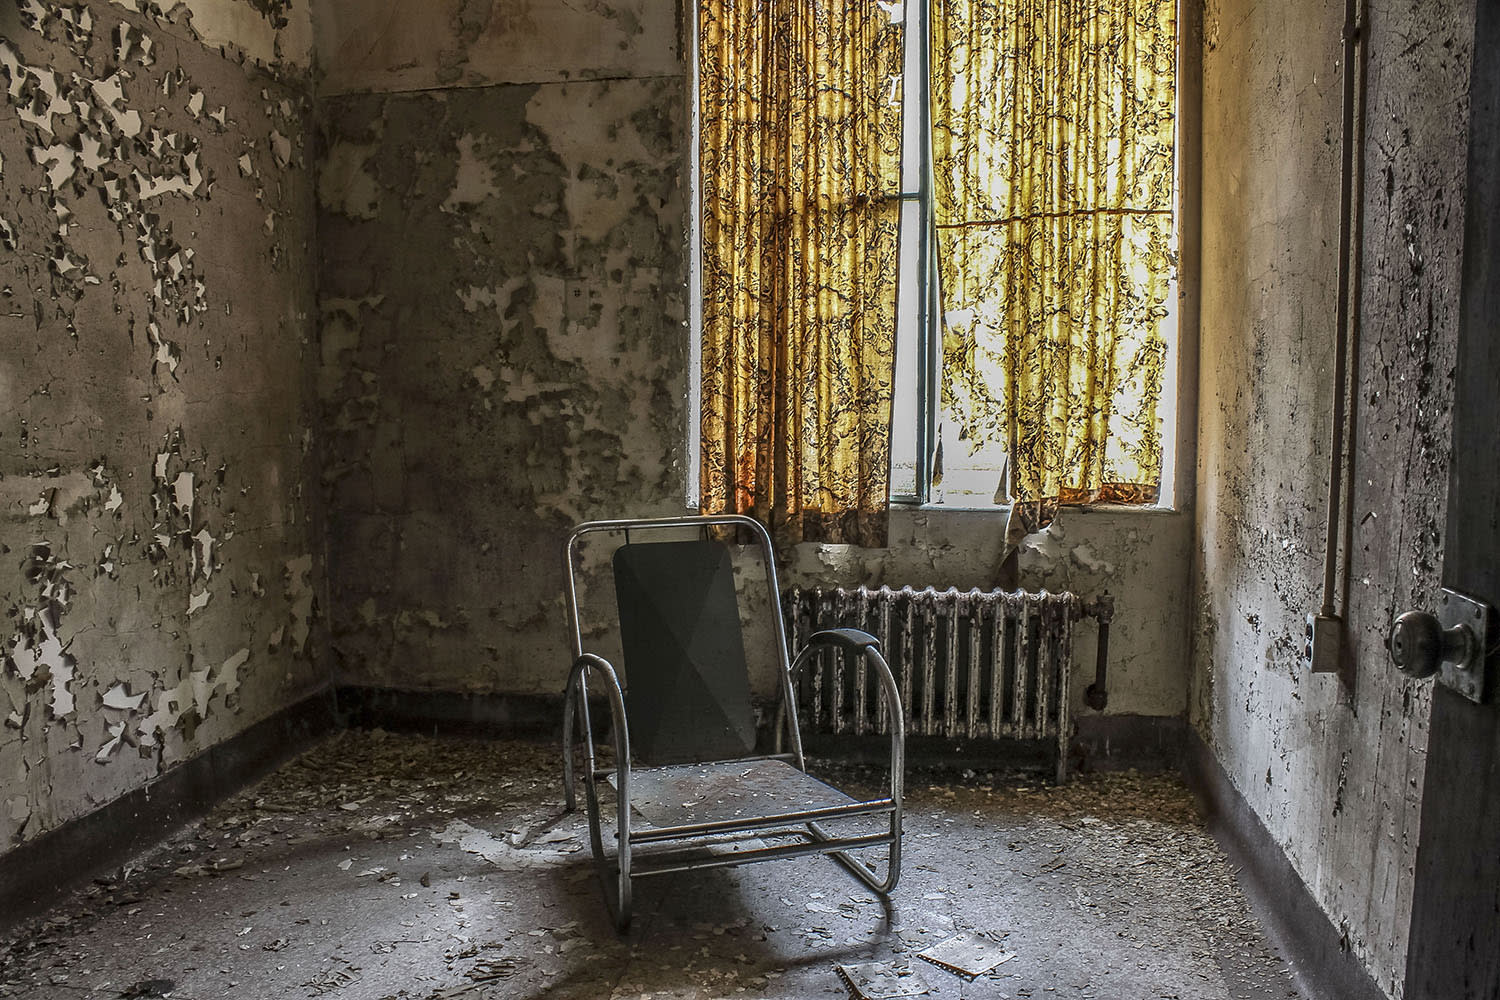 <p>The hospitals population grew from hundreds, in the 1890s, to thousands, in the 1960s, as patients were institutionalized for decades. (Caters News)(Caters News) </p>